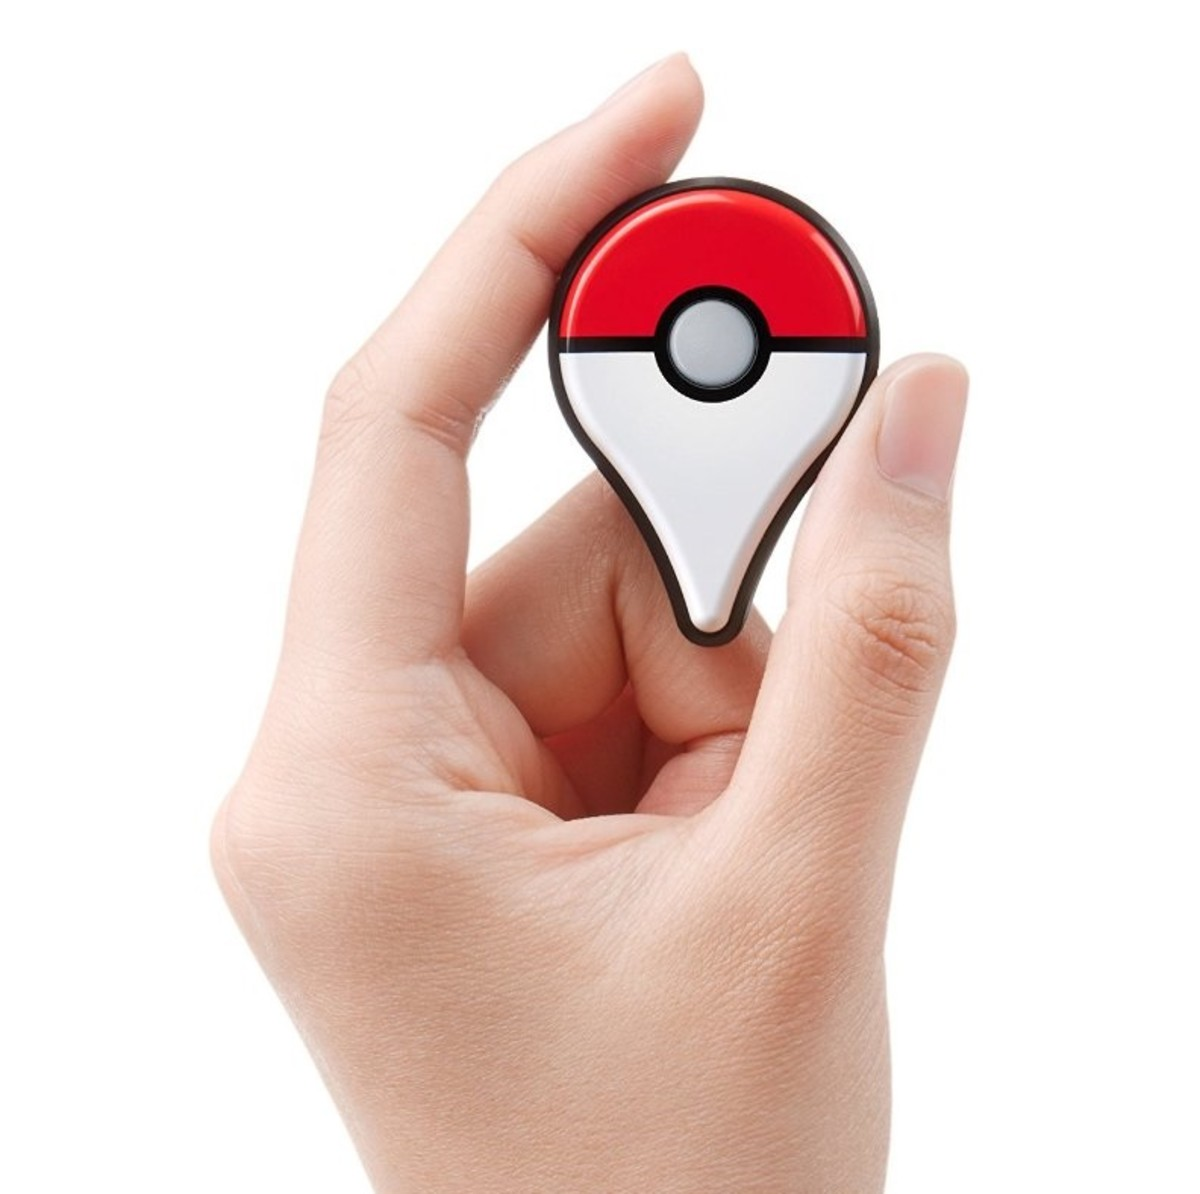 The Go Plus allows you to play Pokemon Go without having the application on.